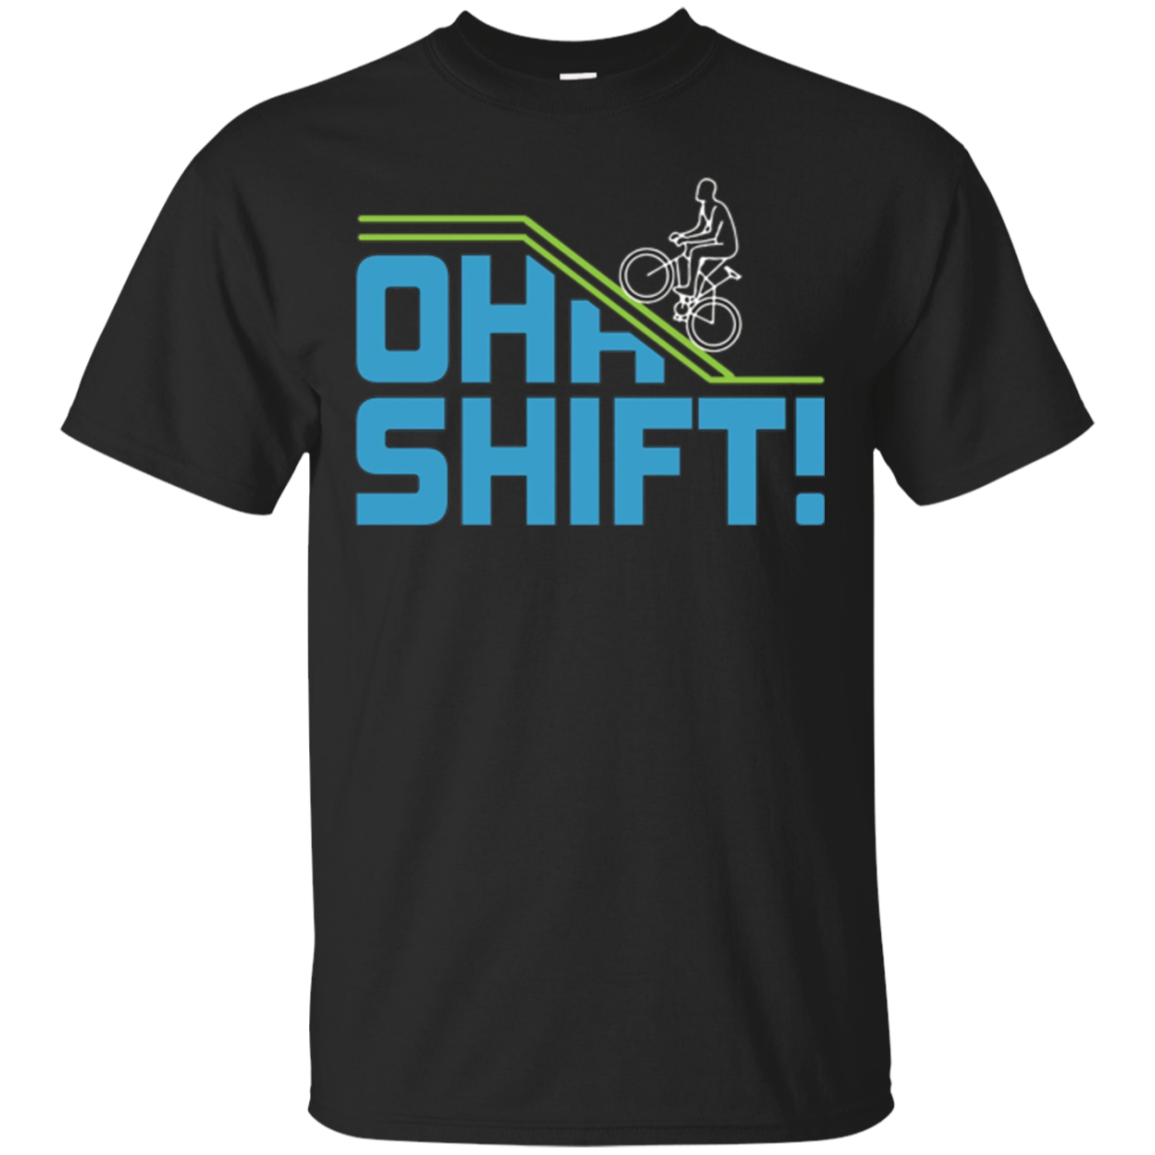 Oh Shift! Funny Bicycle T-Shirt for Bike Riders, Cyclists